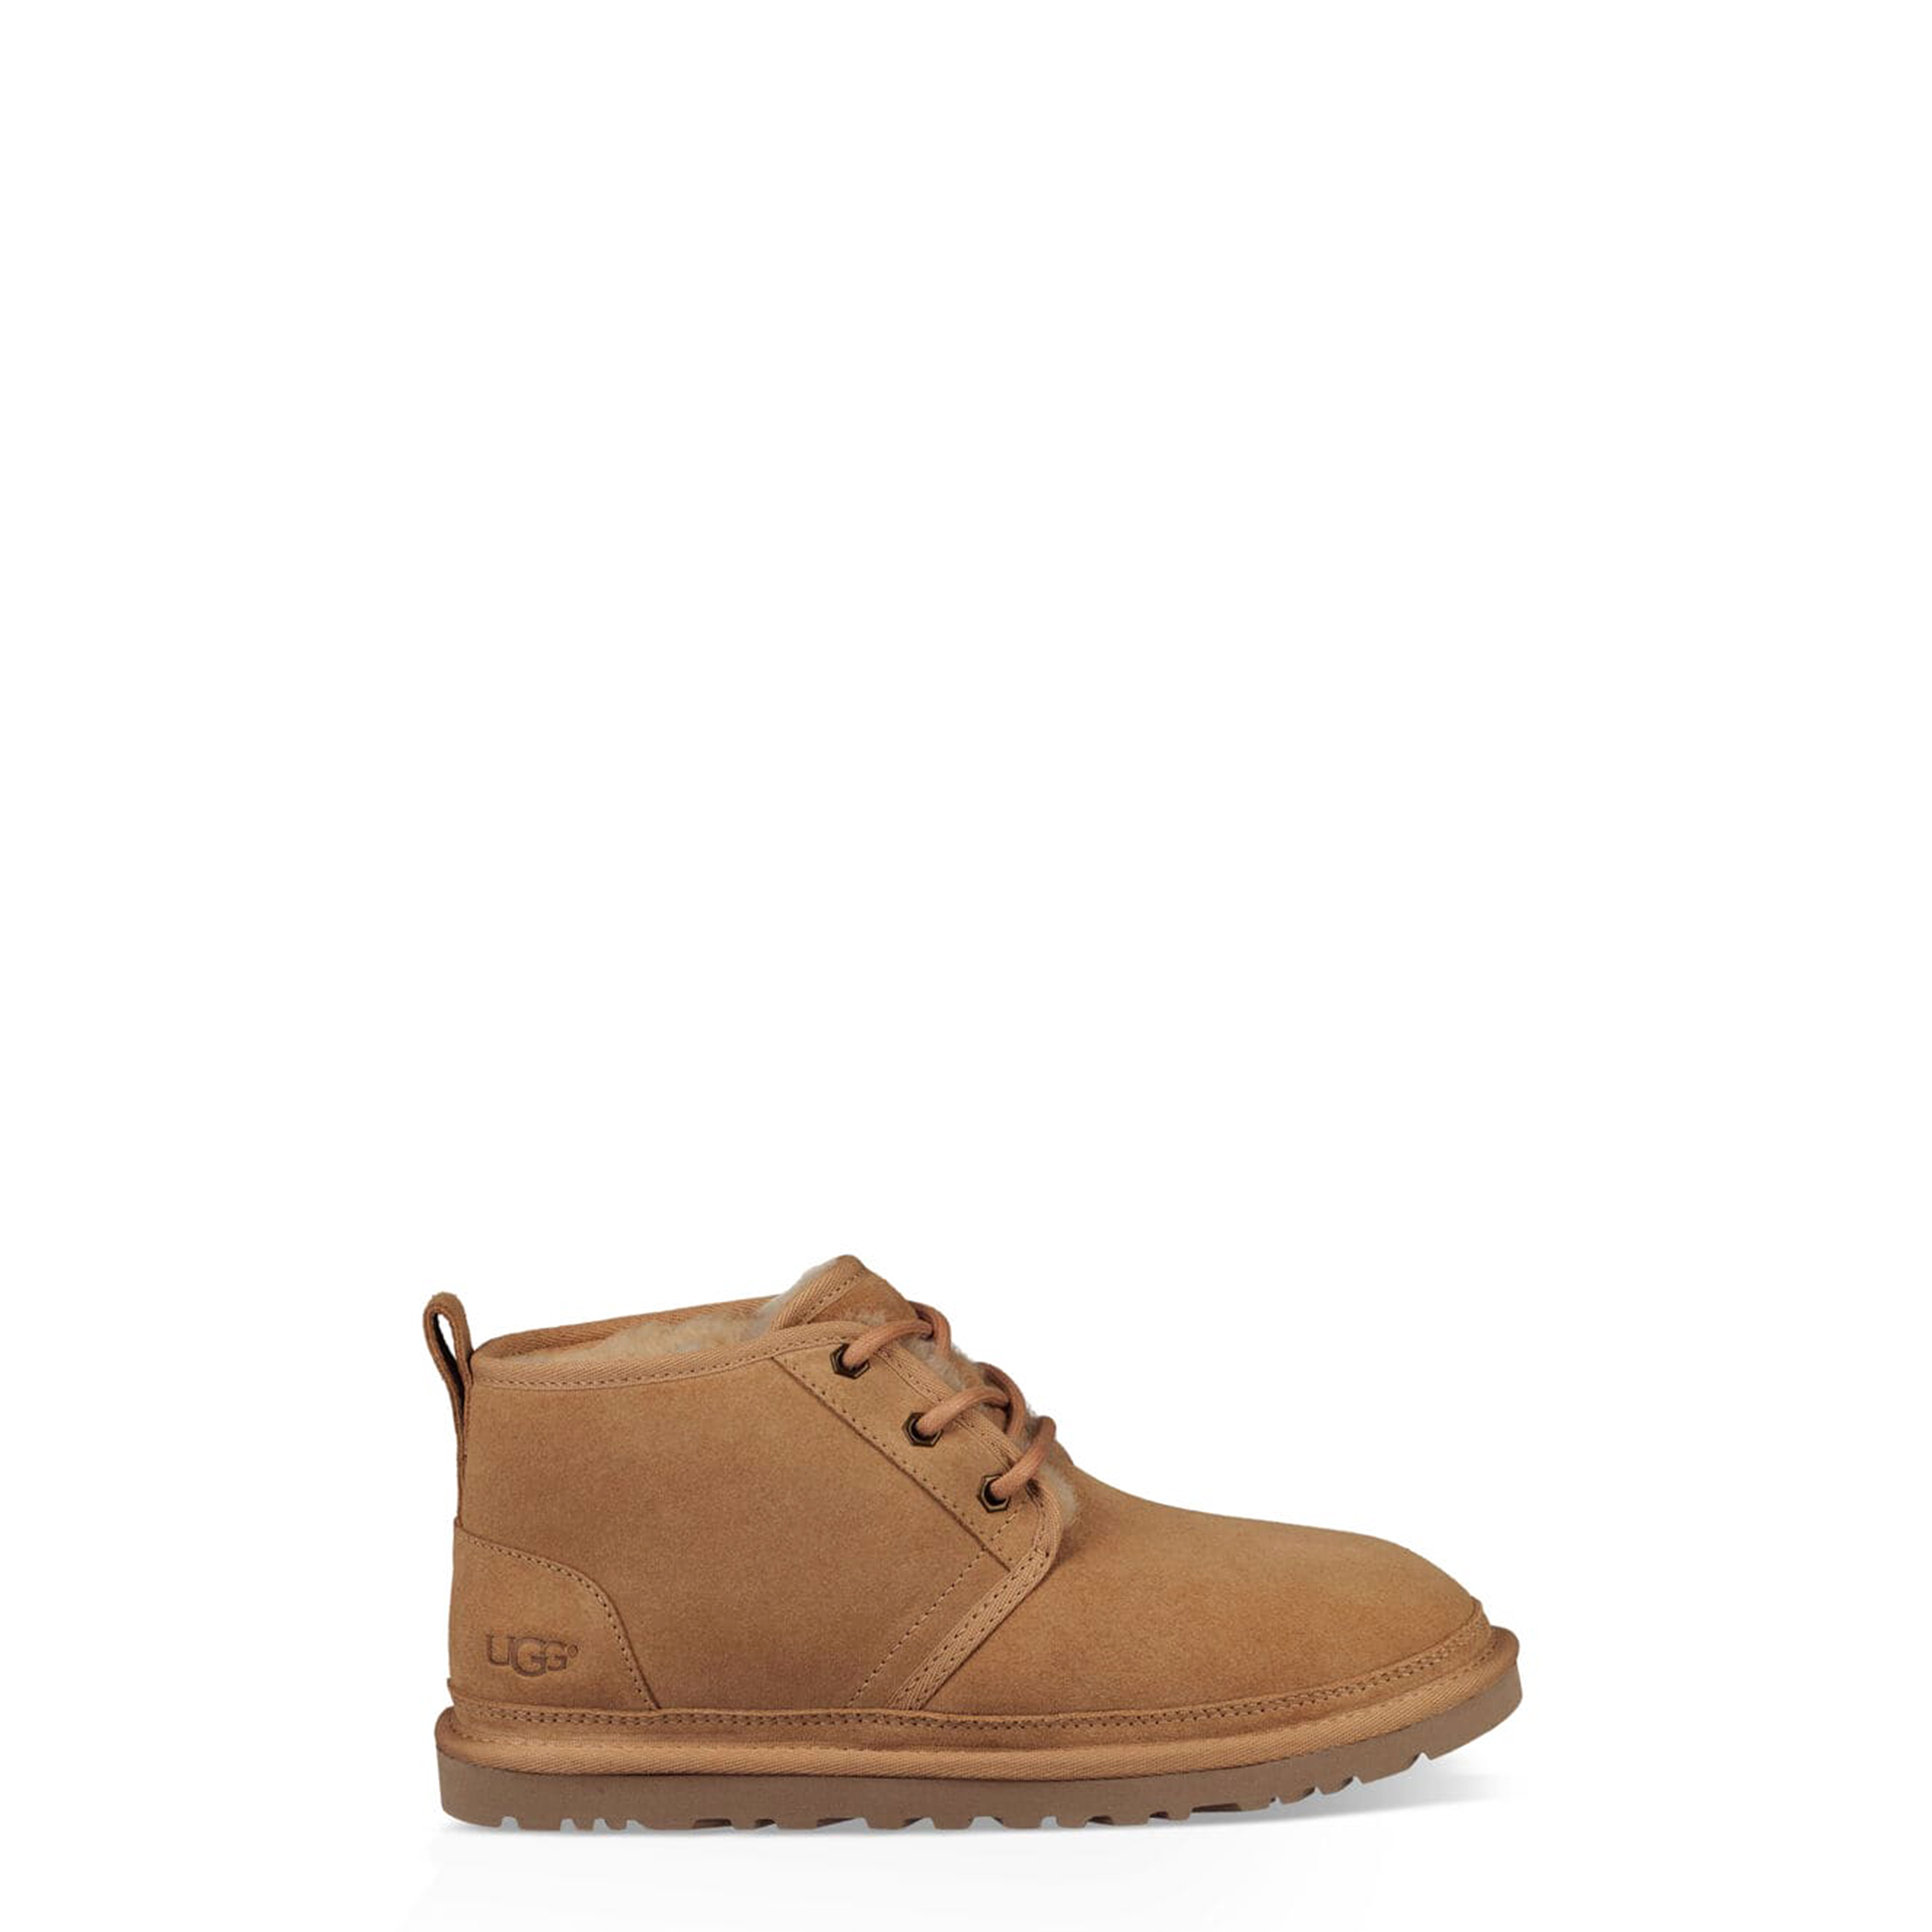 Ugg 1094269 Neumel Boot Chestnut dames